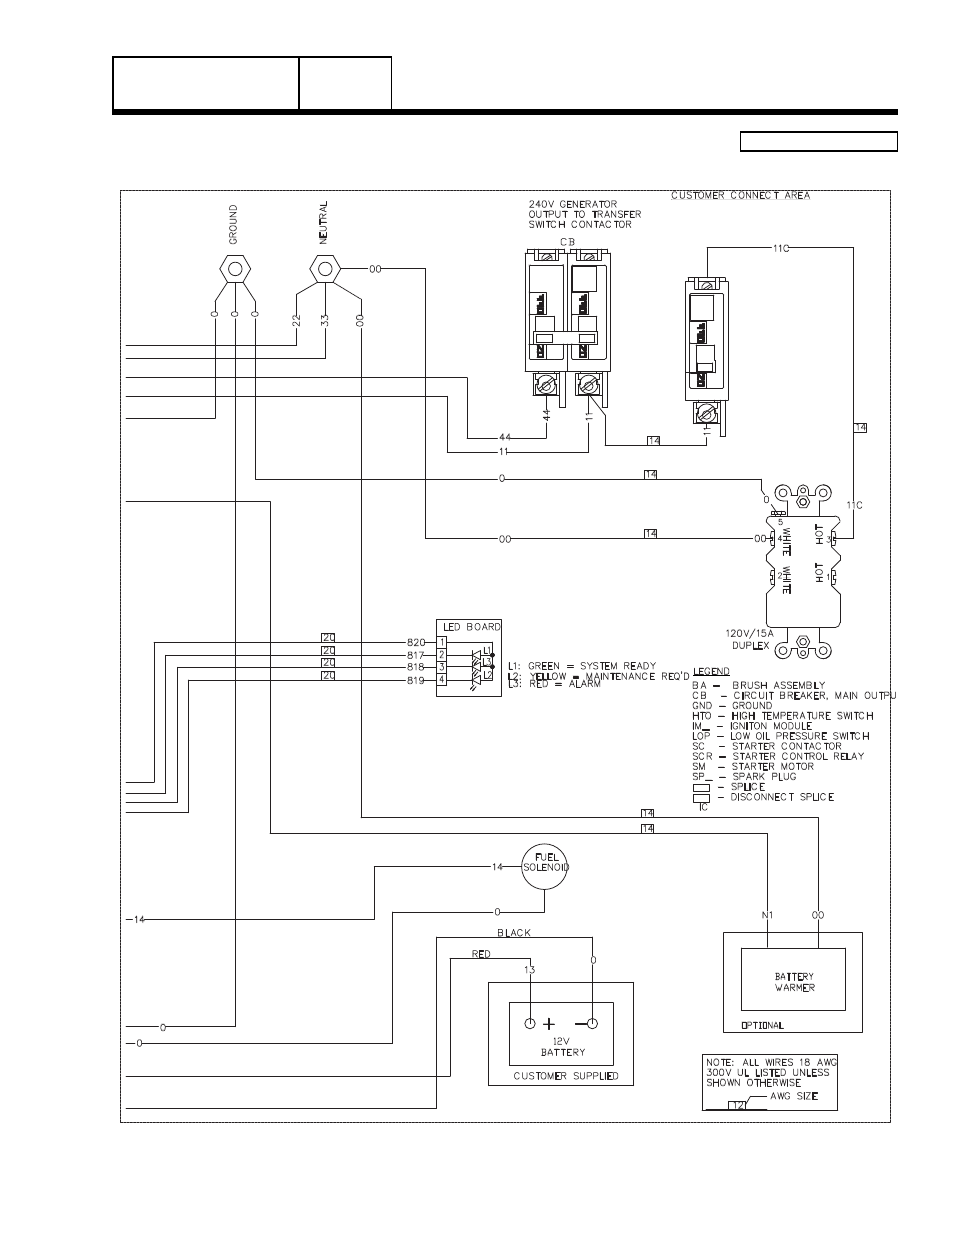 medium resolution of 10 kw generac wiring diagram wiring library rh 88 fulldiabetescare org generac transfer switch wiring diagram